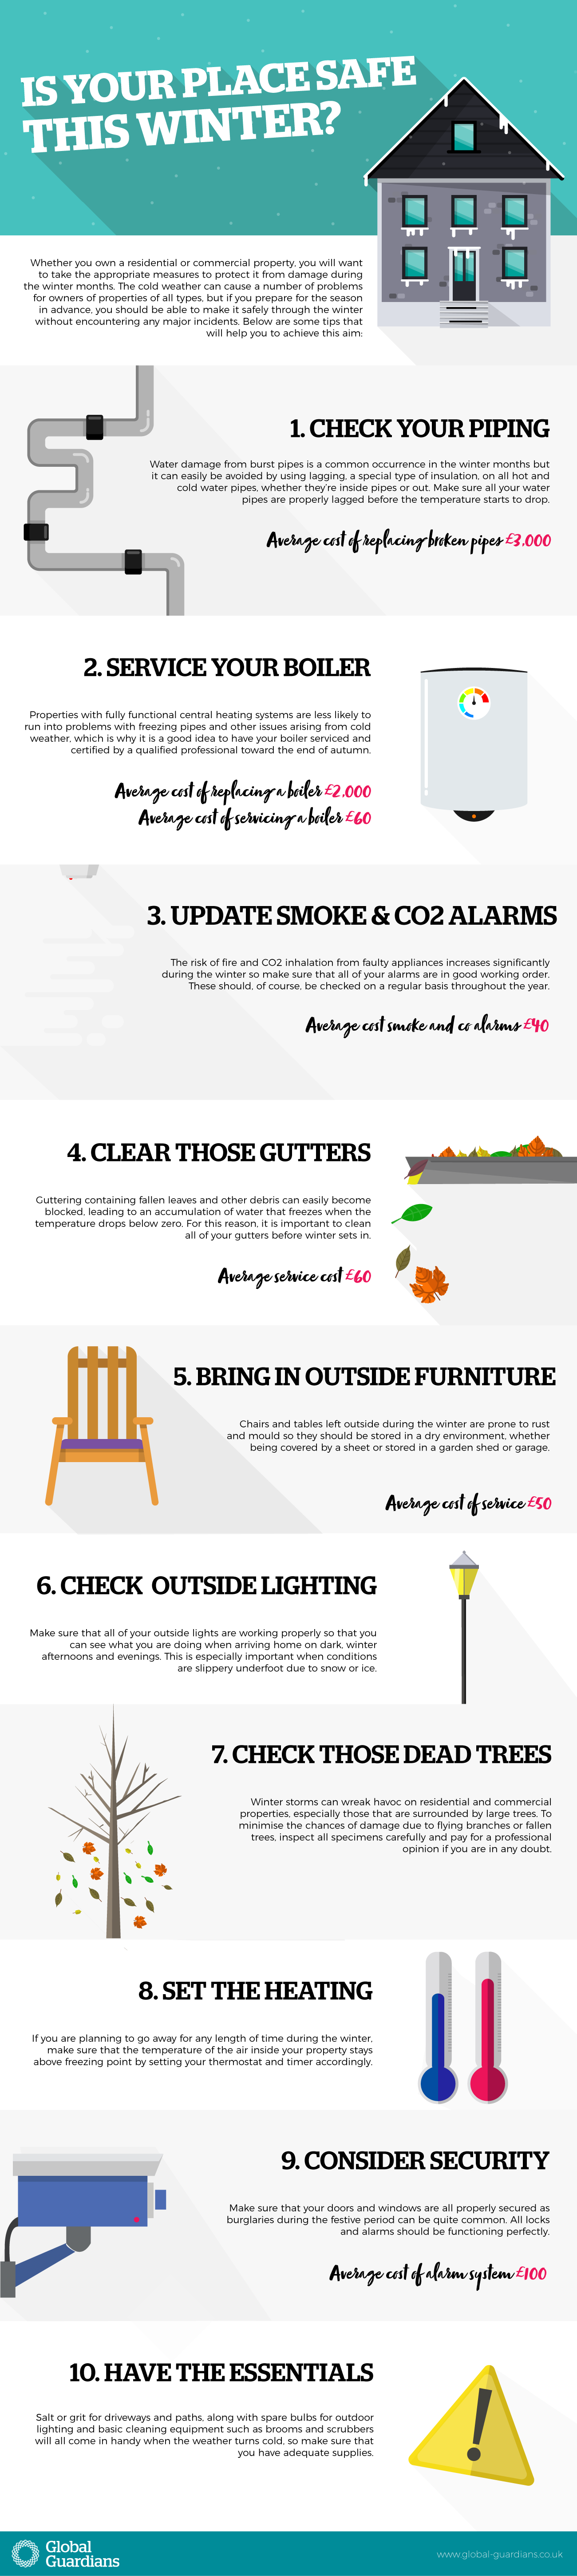 Is-your-place-safe-this-winter-(infographic)